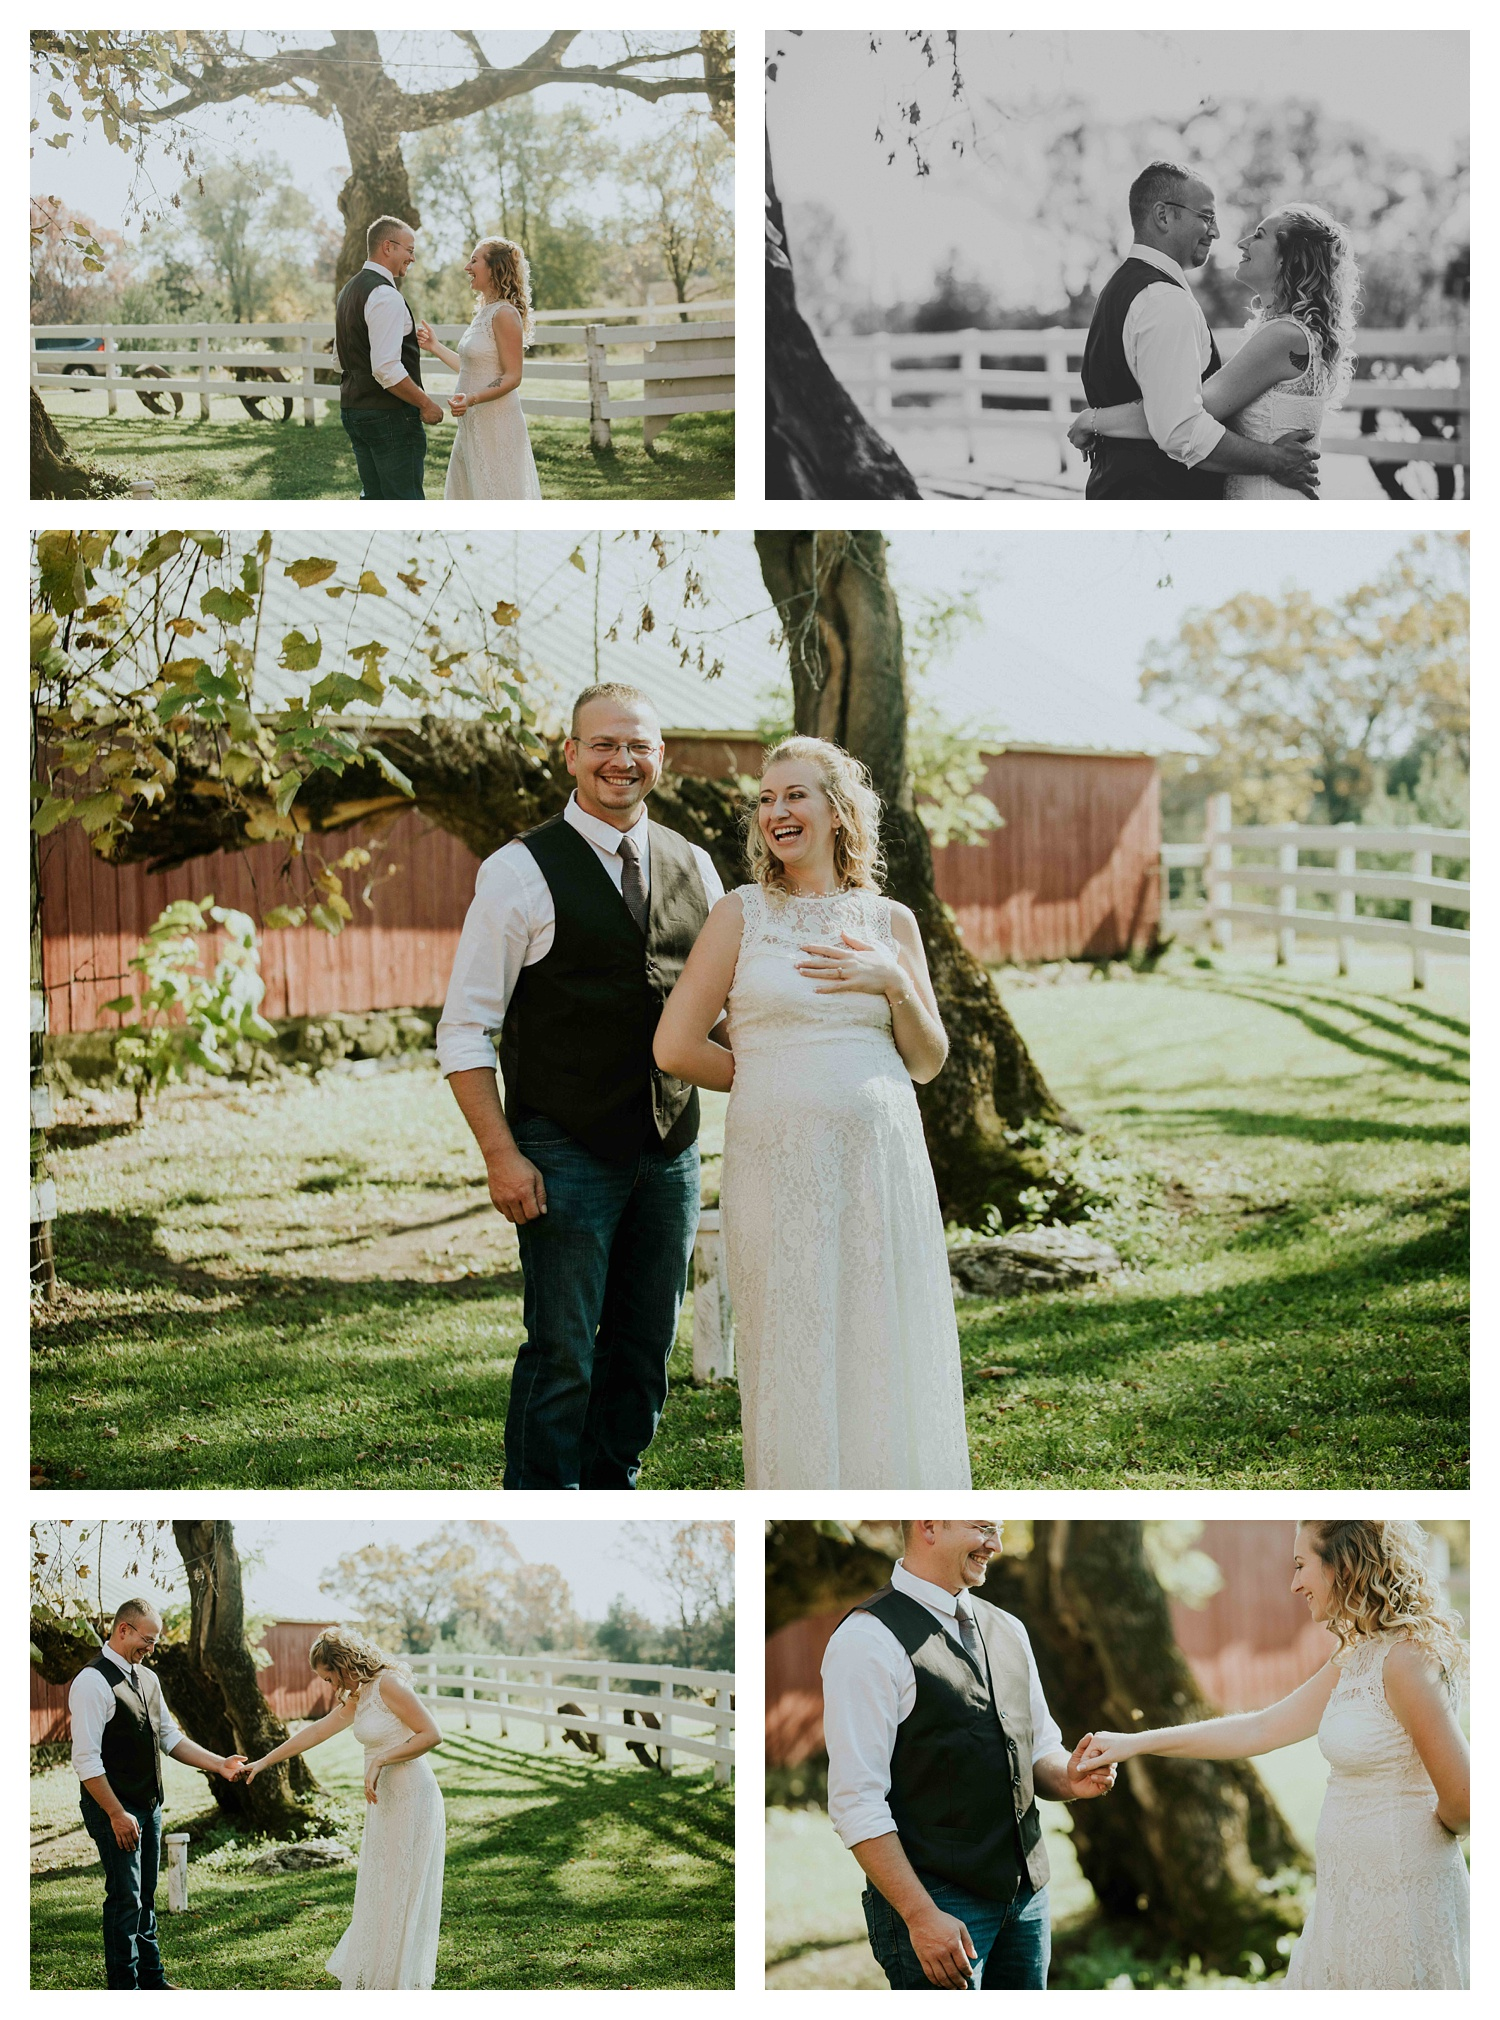 clauson barn wedding photographer chloe ann photography madison wisconsin photographer_0002.jpg